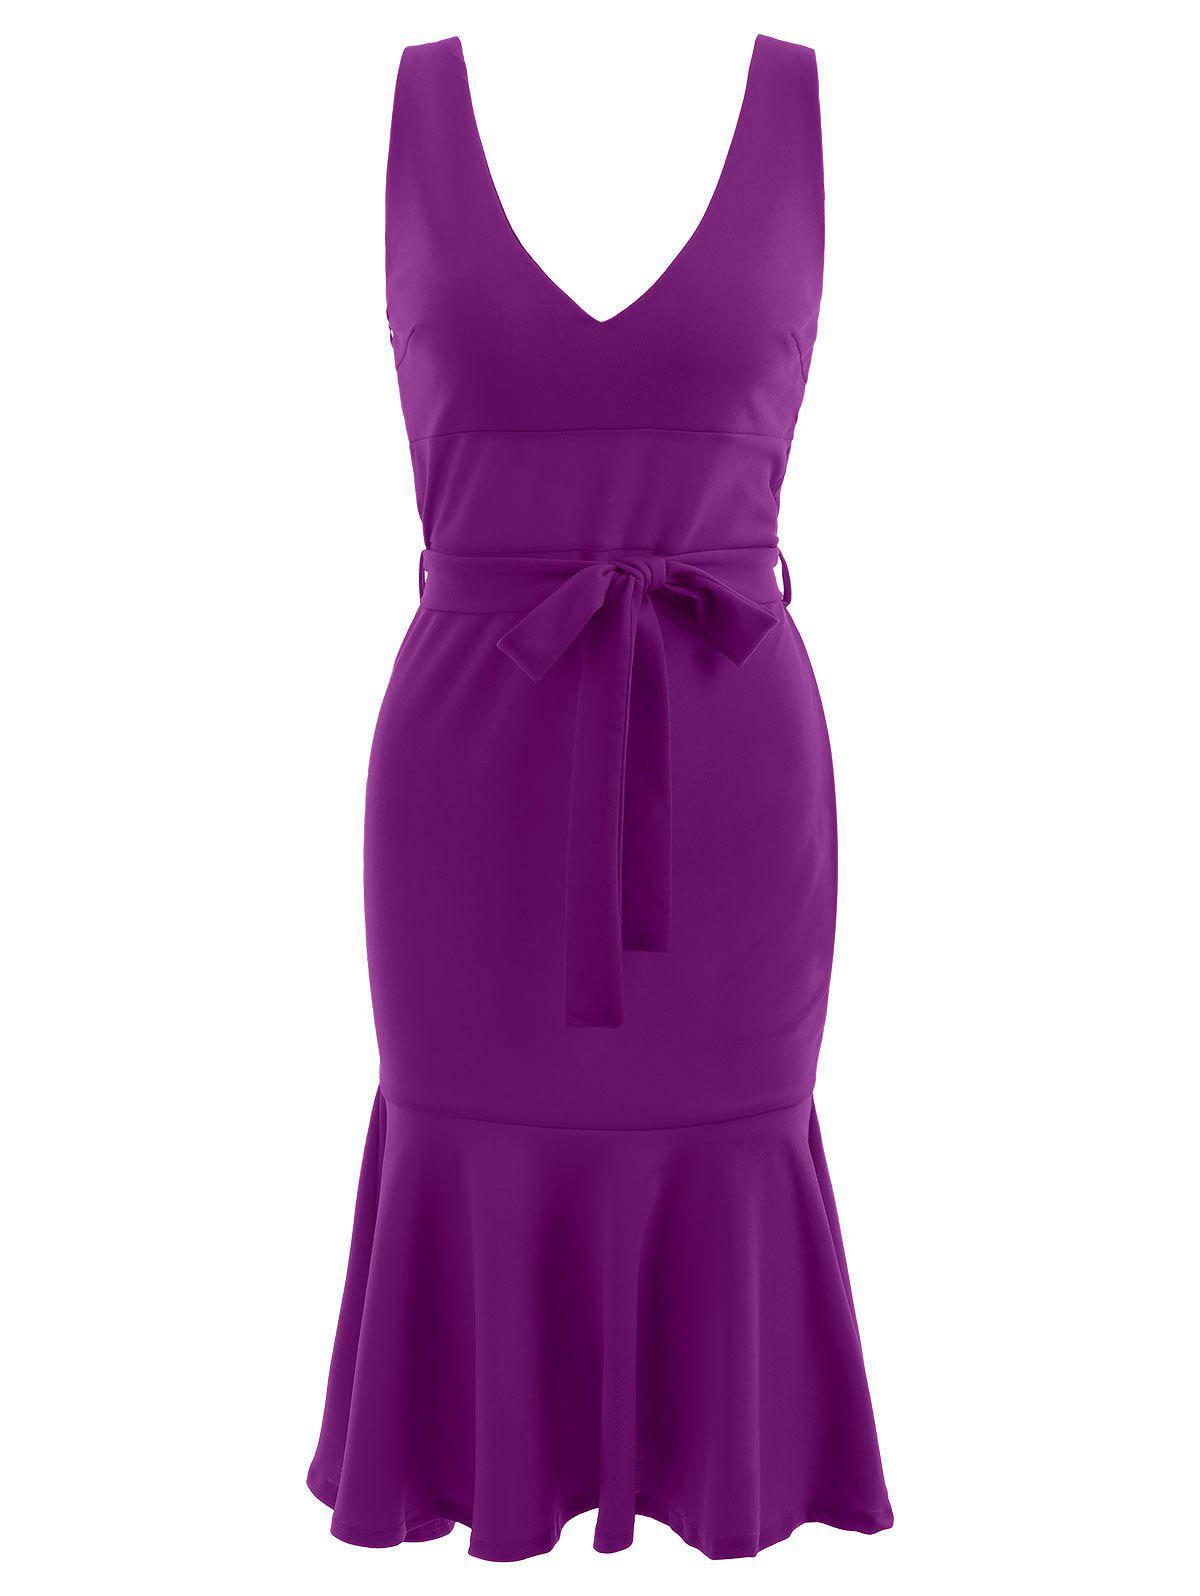 Ruffle Hem Plunge Mid Calf Dress - PURPLE S